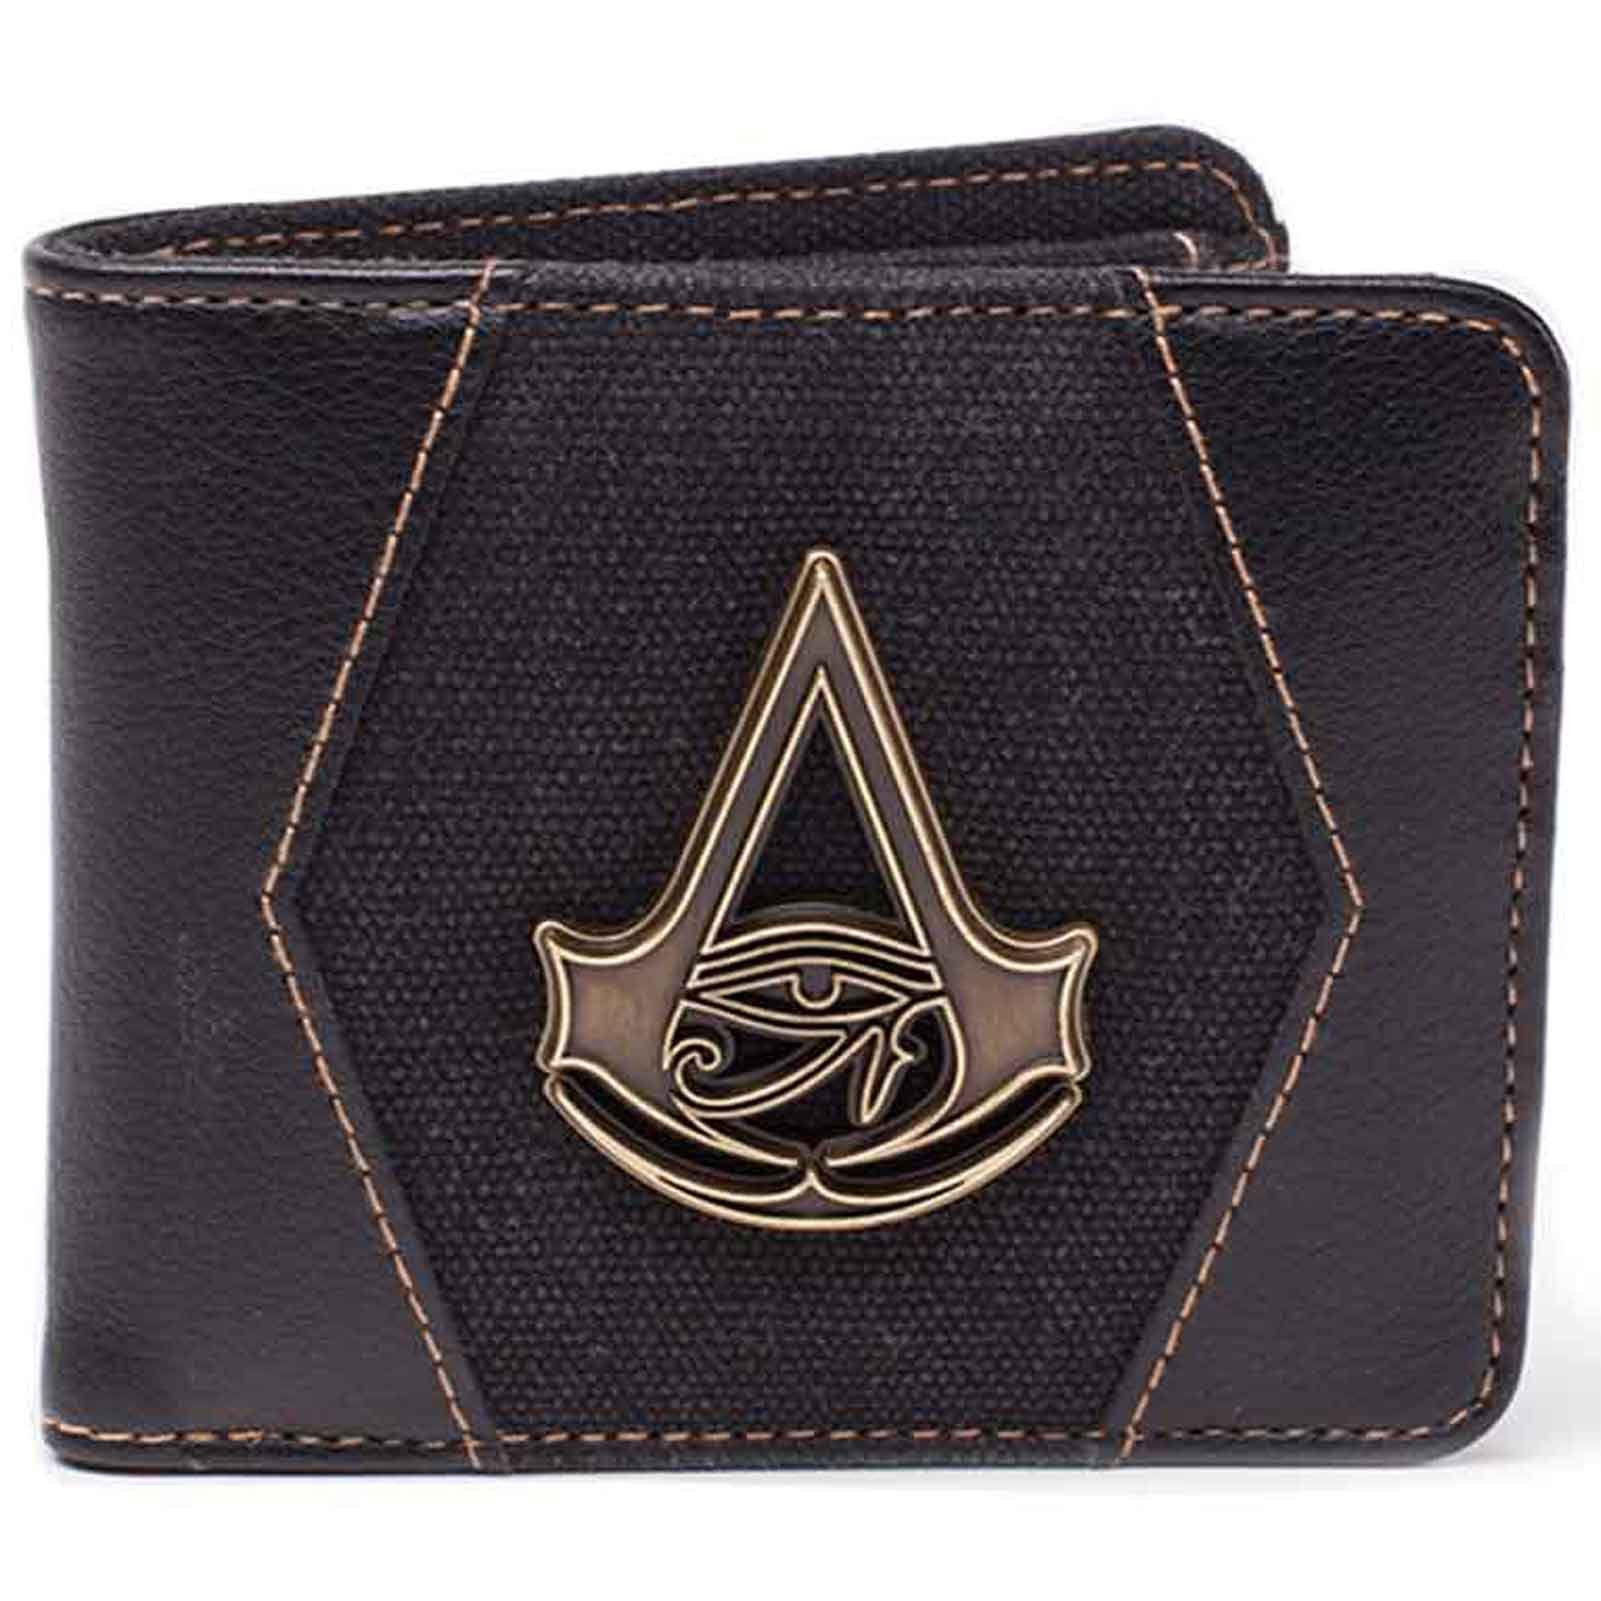 Assassins Creed Wallet Origins Crest Official Ps4 Xbox Bifold Zip Around by Assassins Creed Merch